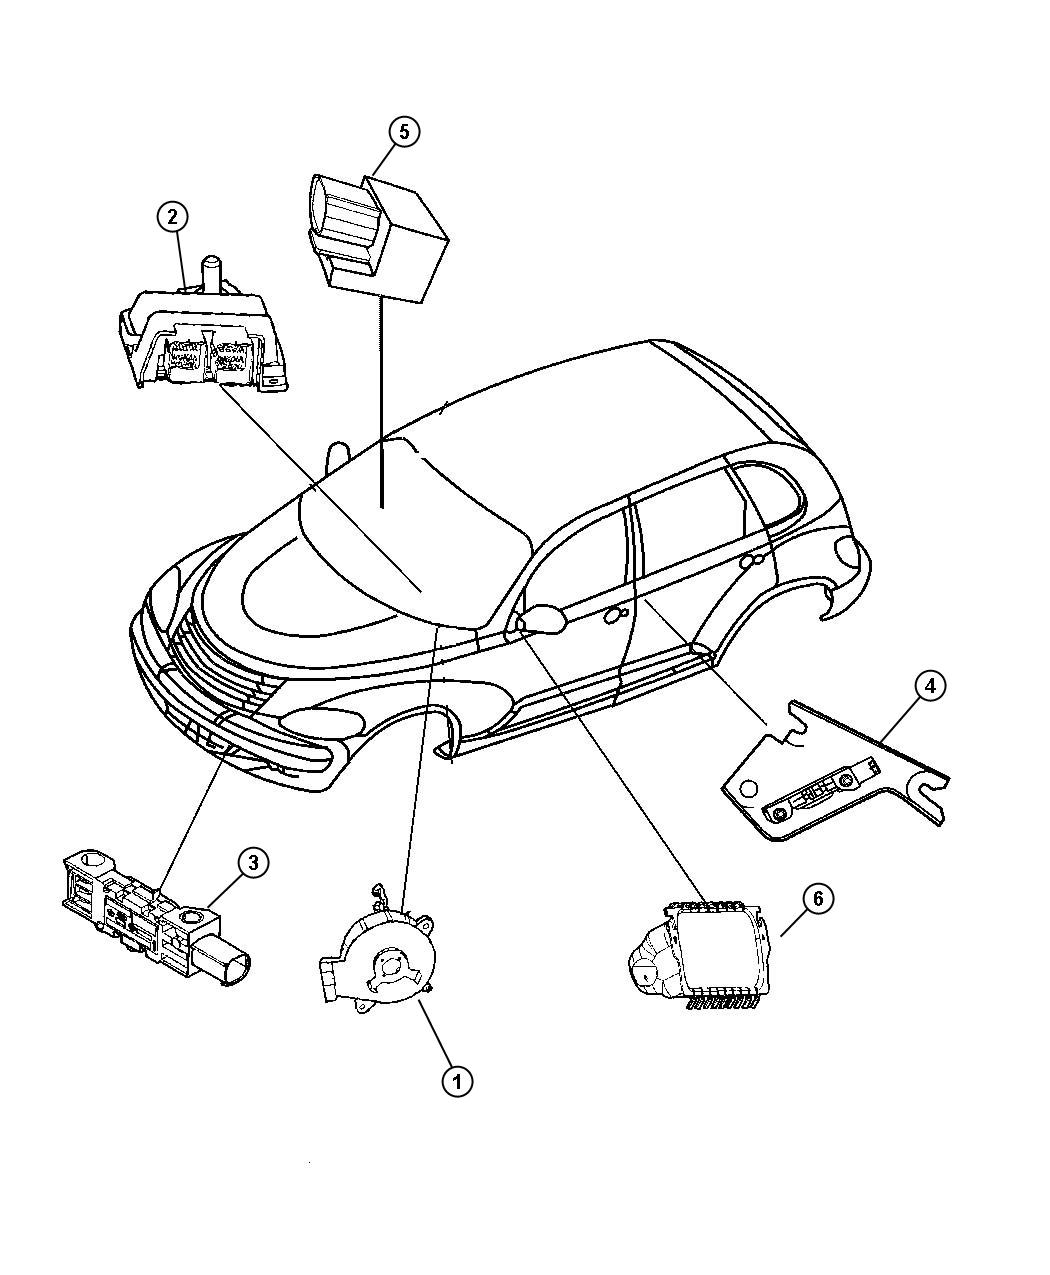 Diagram Air Bag Modules, Impact Sensors and Clock Spring. for your Dodge Journey